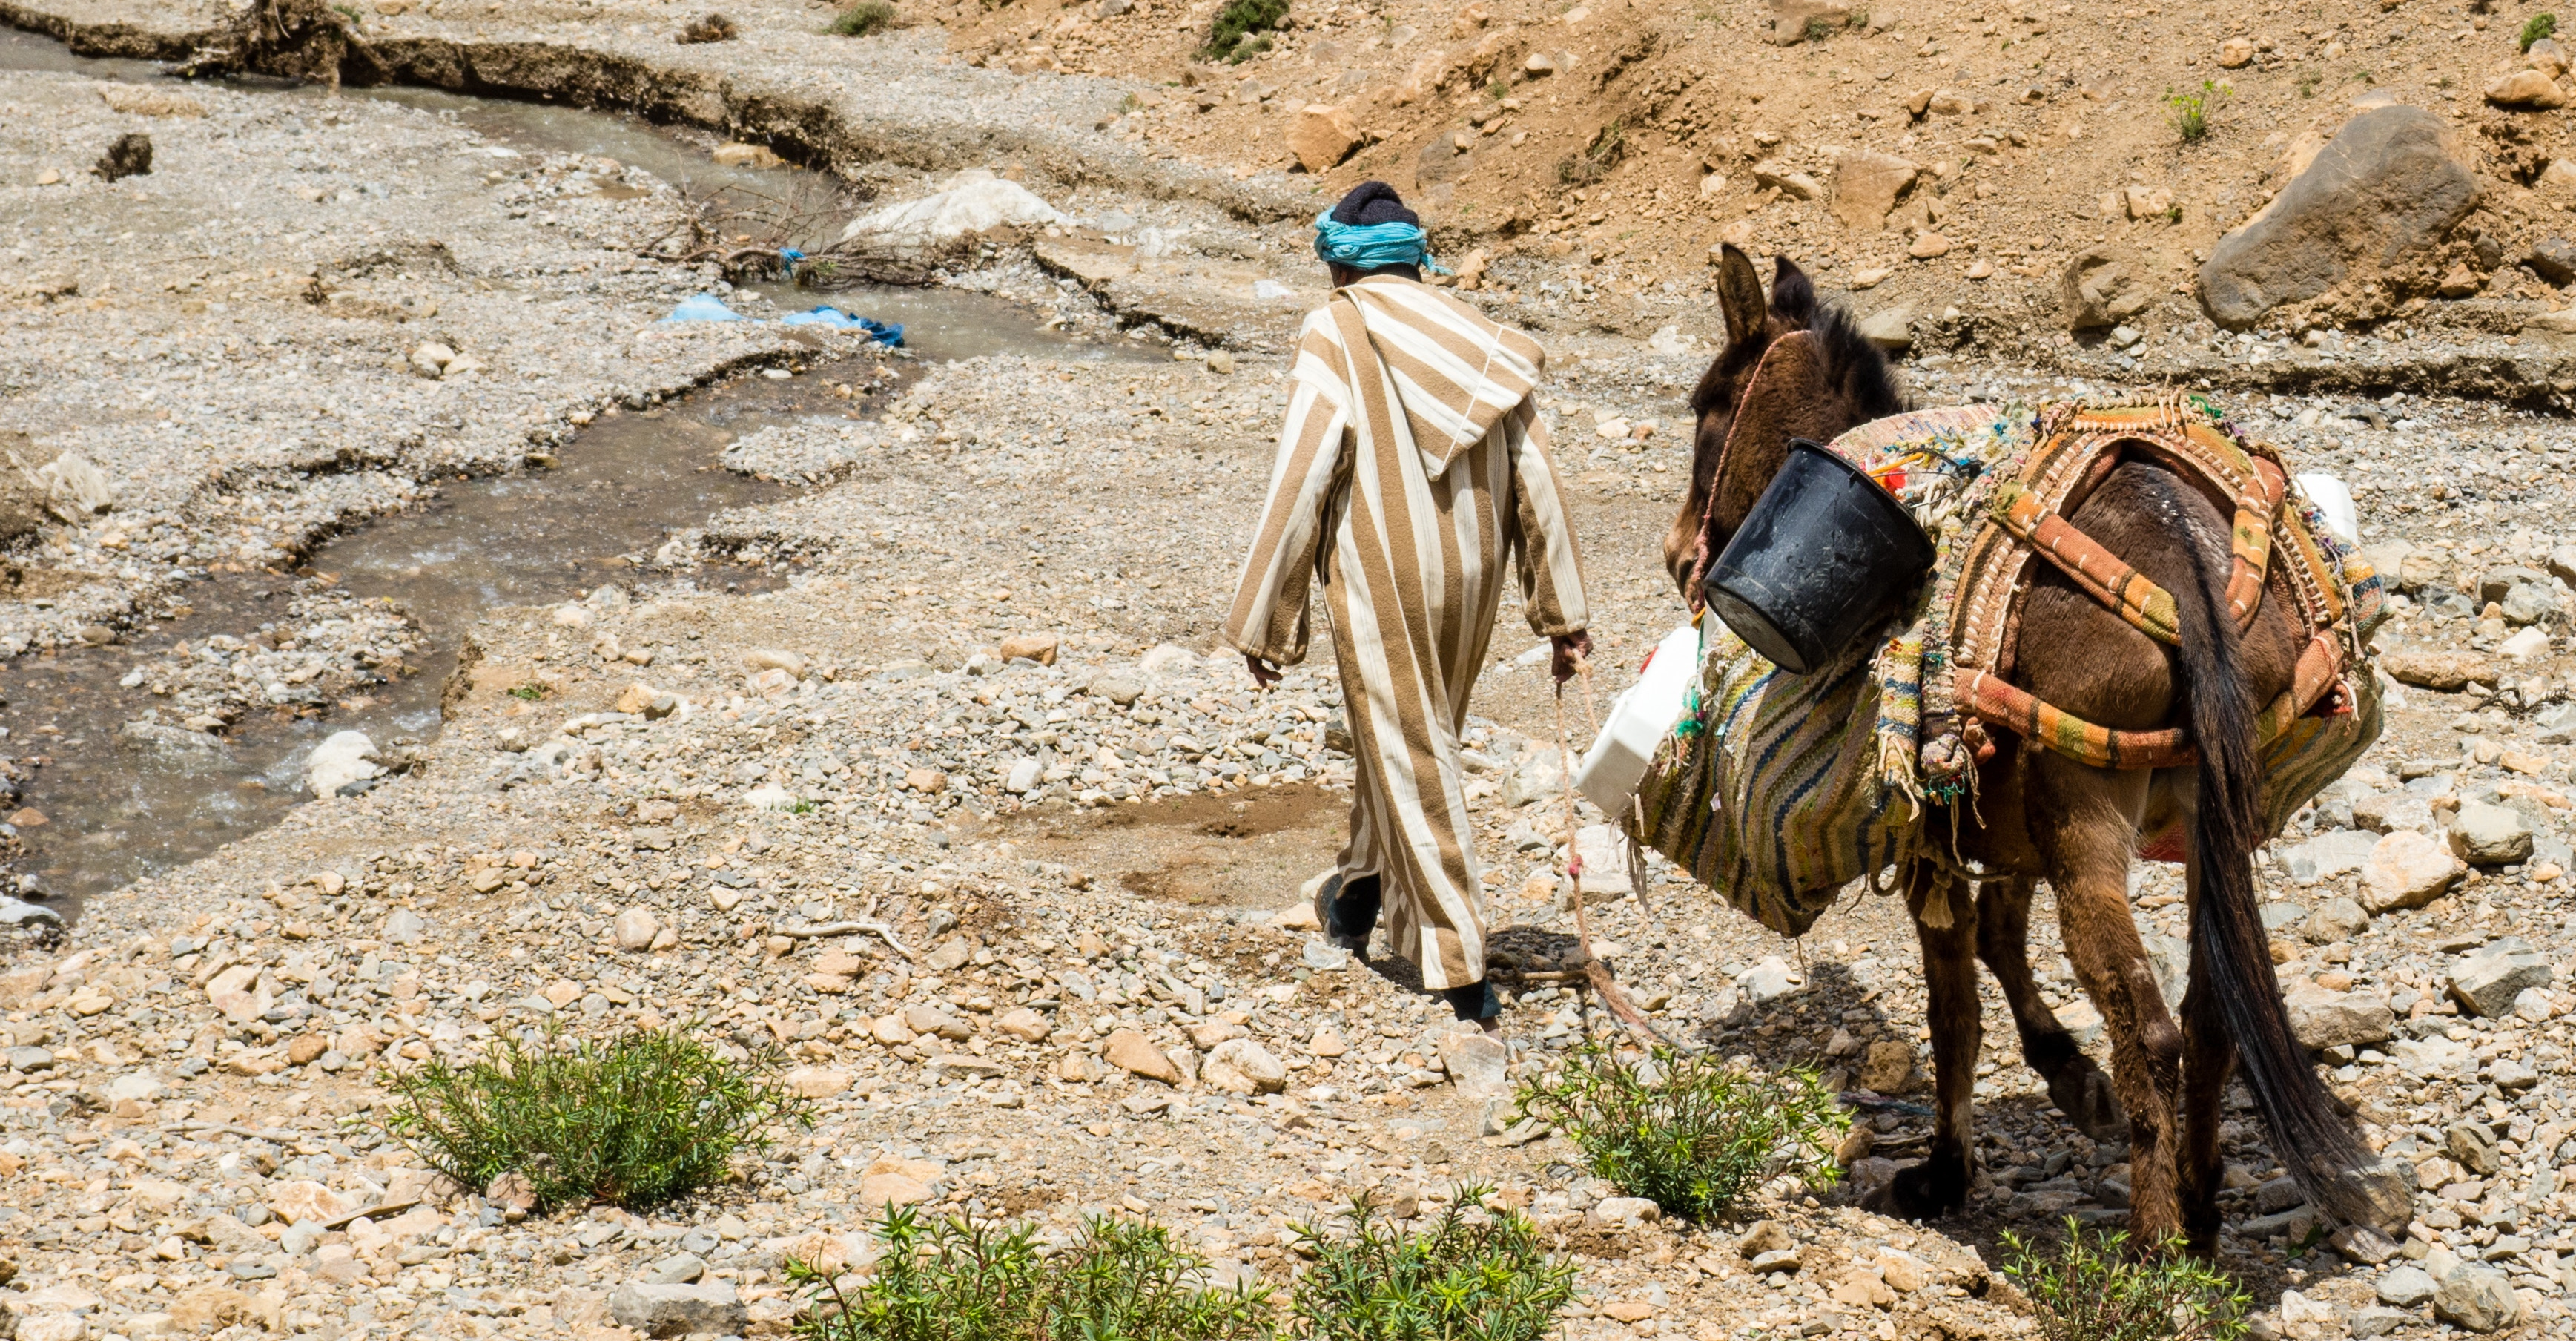 Berber carrying load up mountain